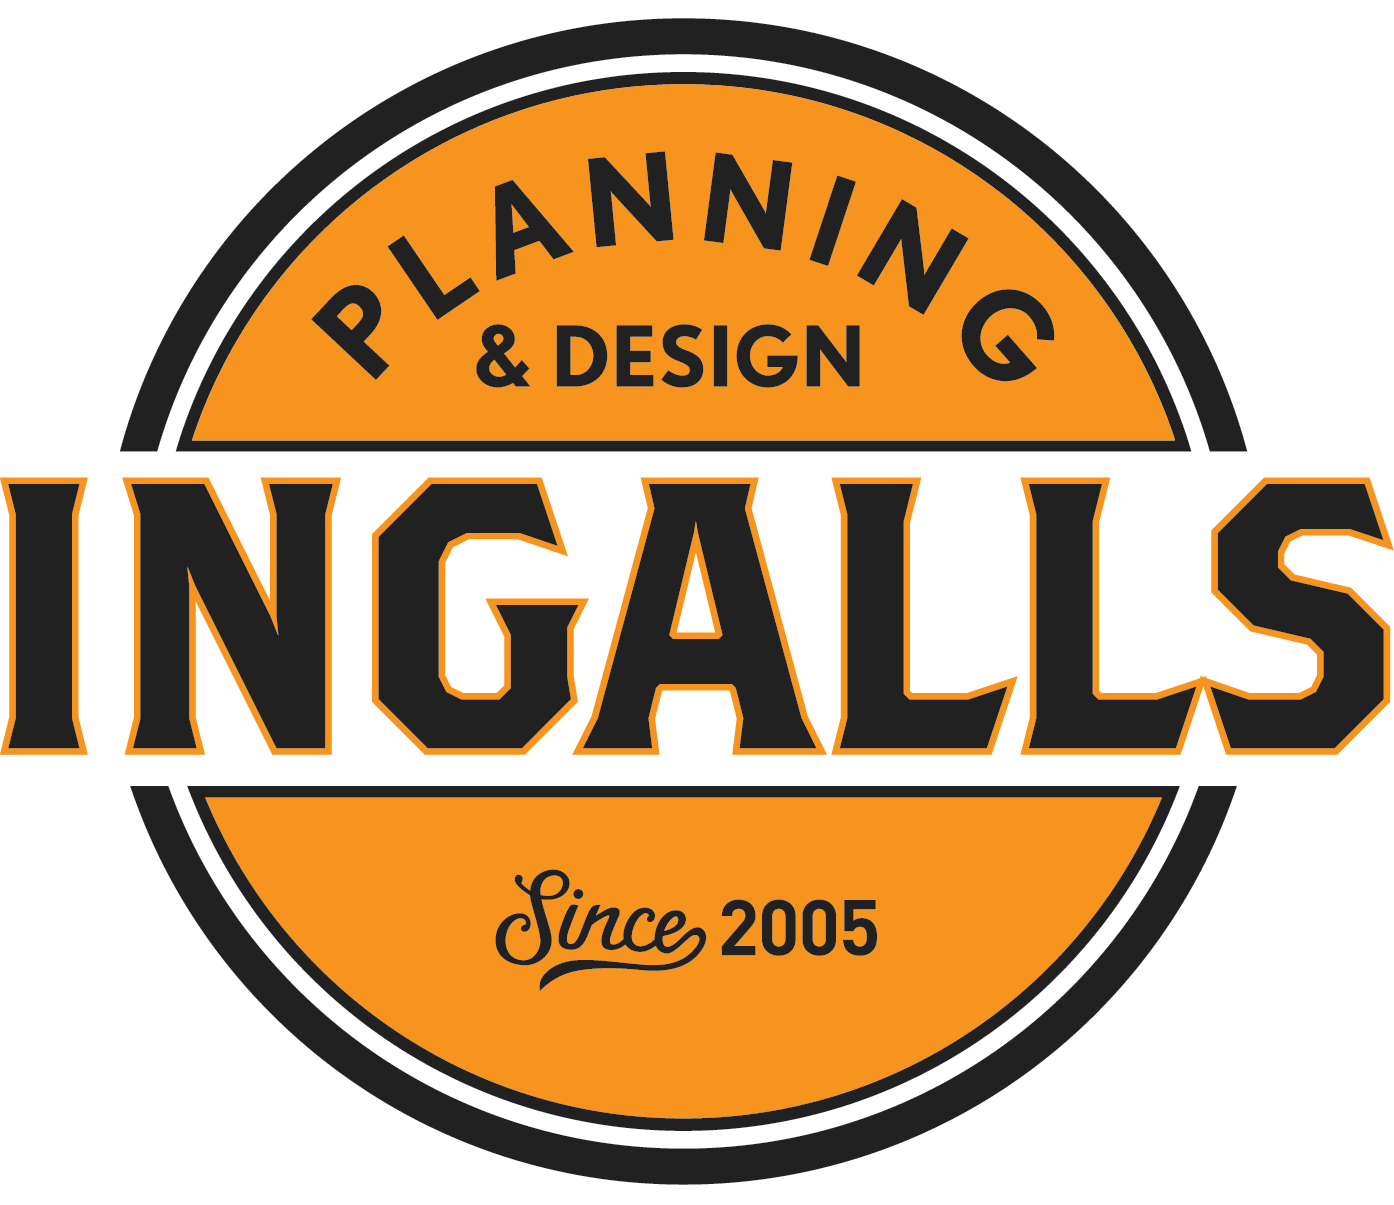 Ingalls_Primary_Orange-1.png